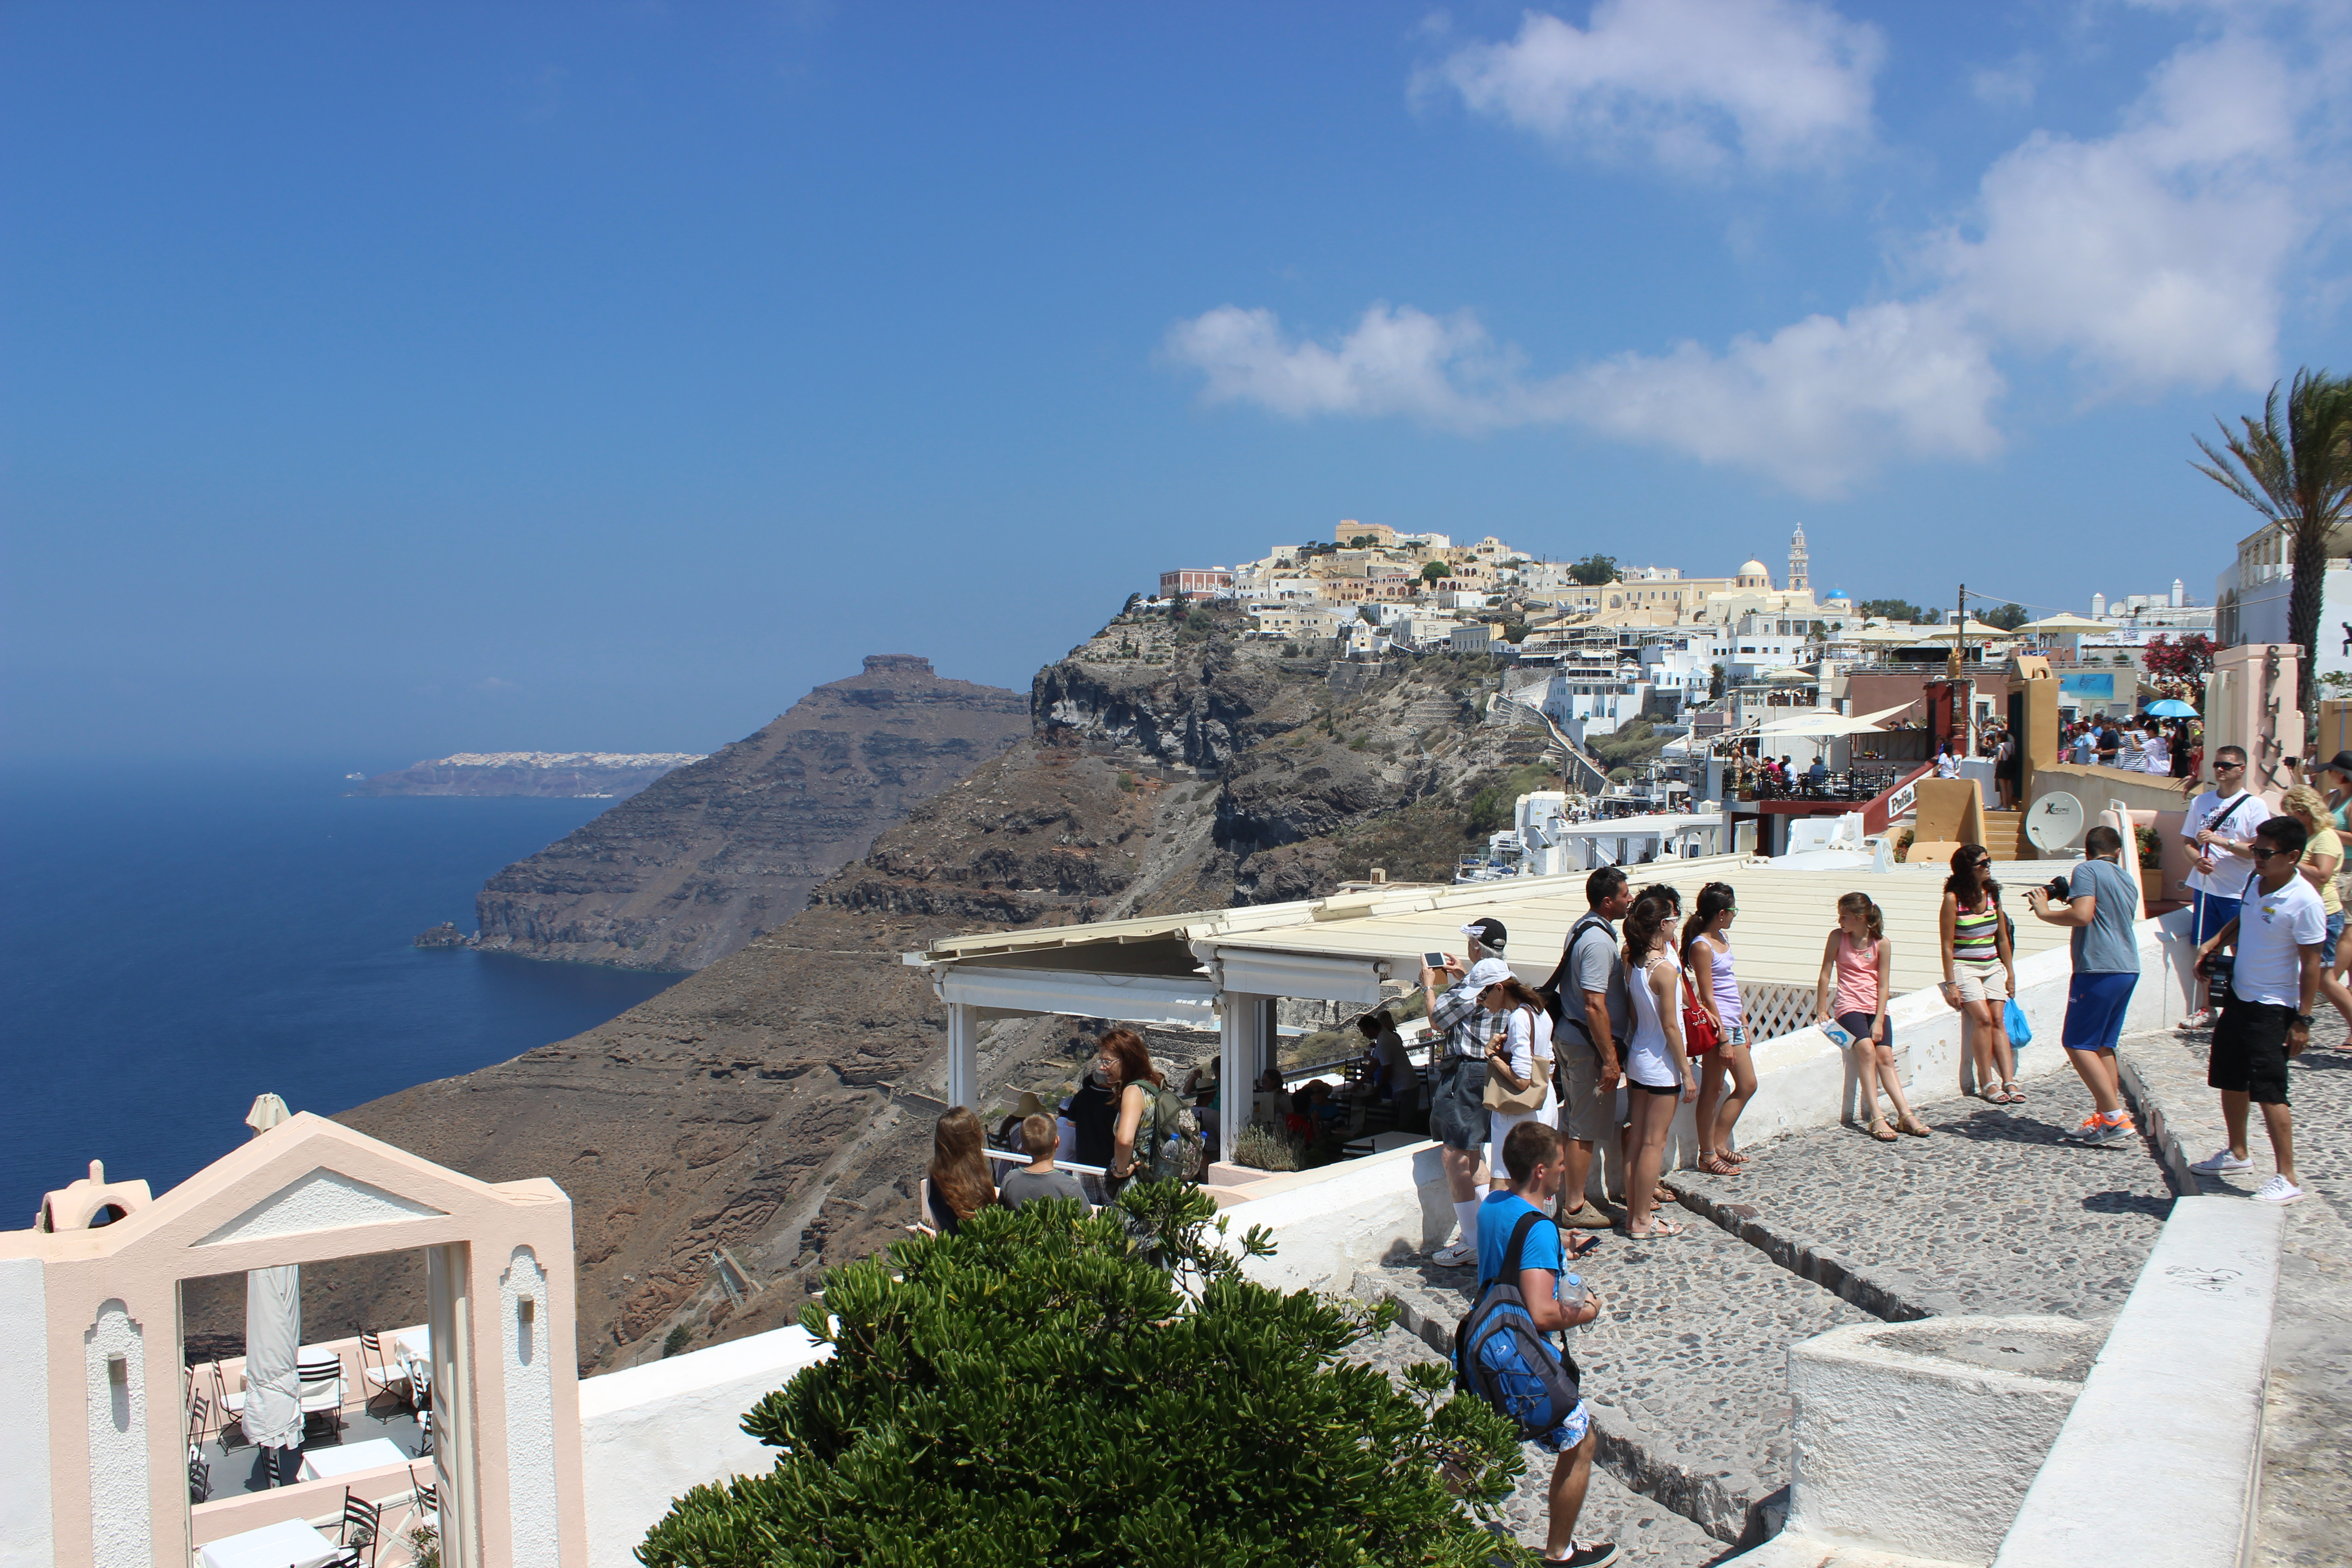 47. Embankment in front of the main cathedral of Firá - Santorini